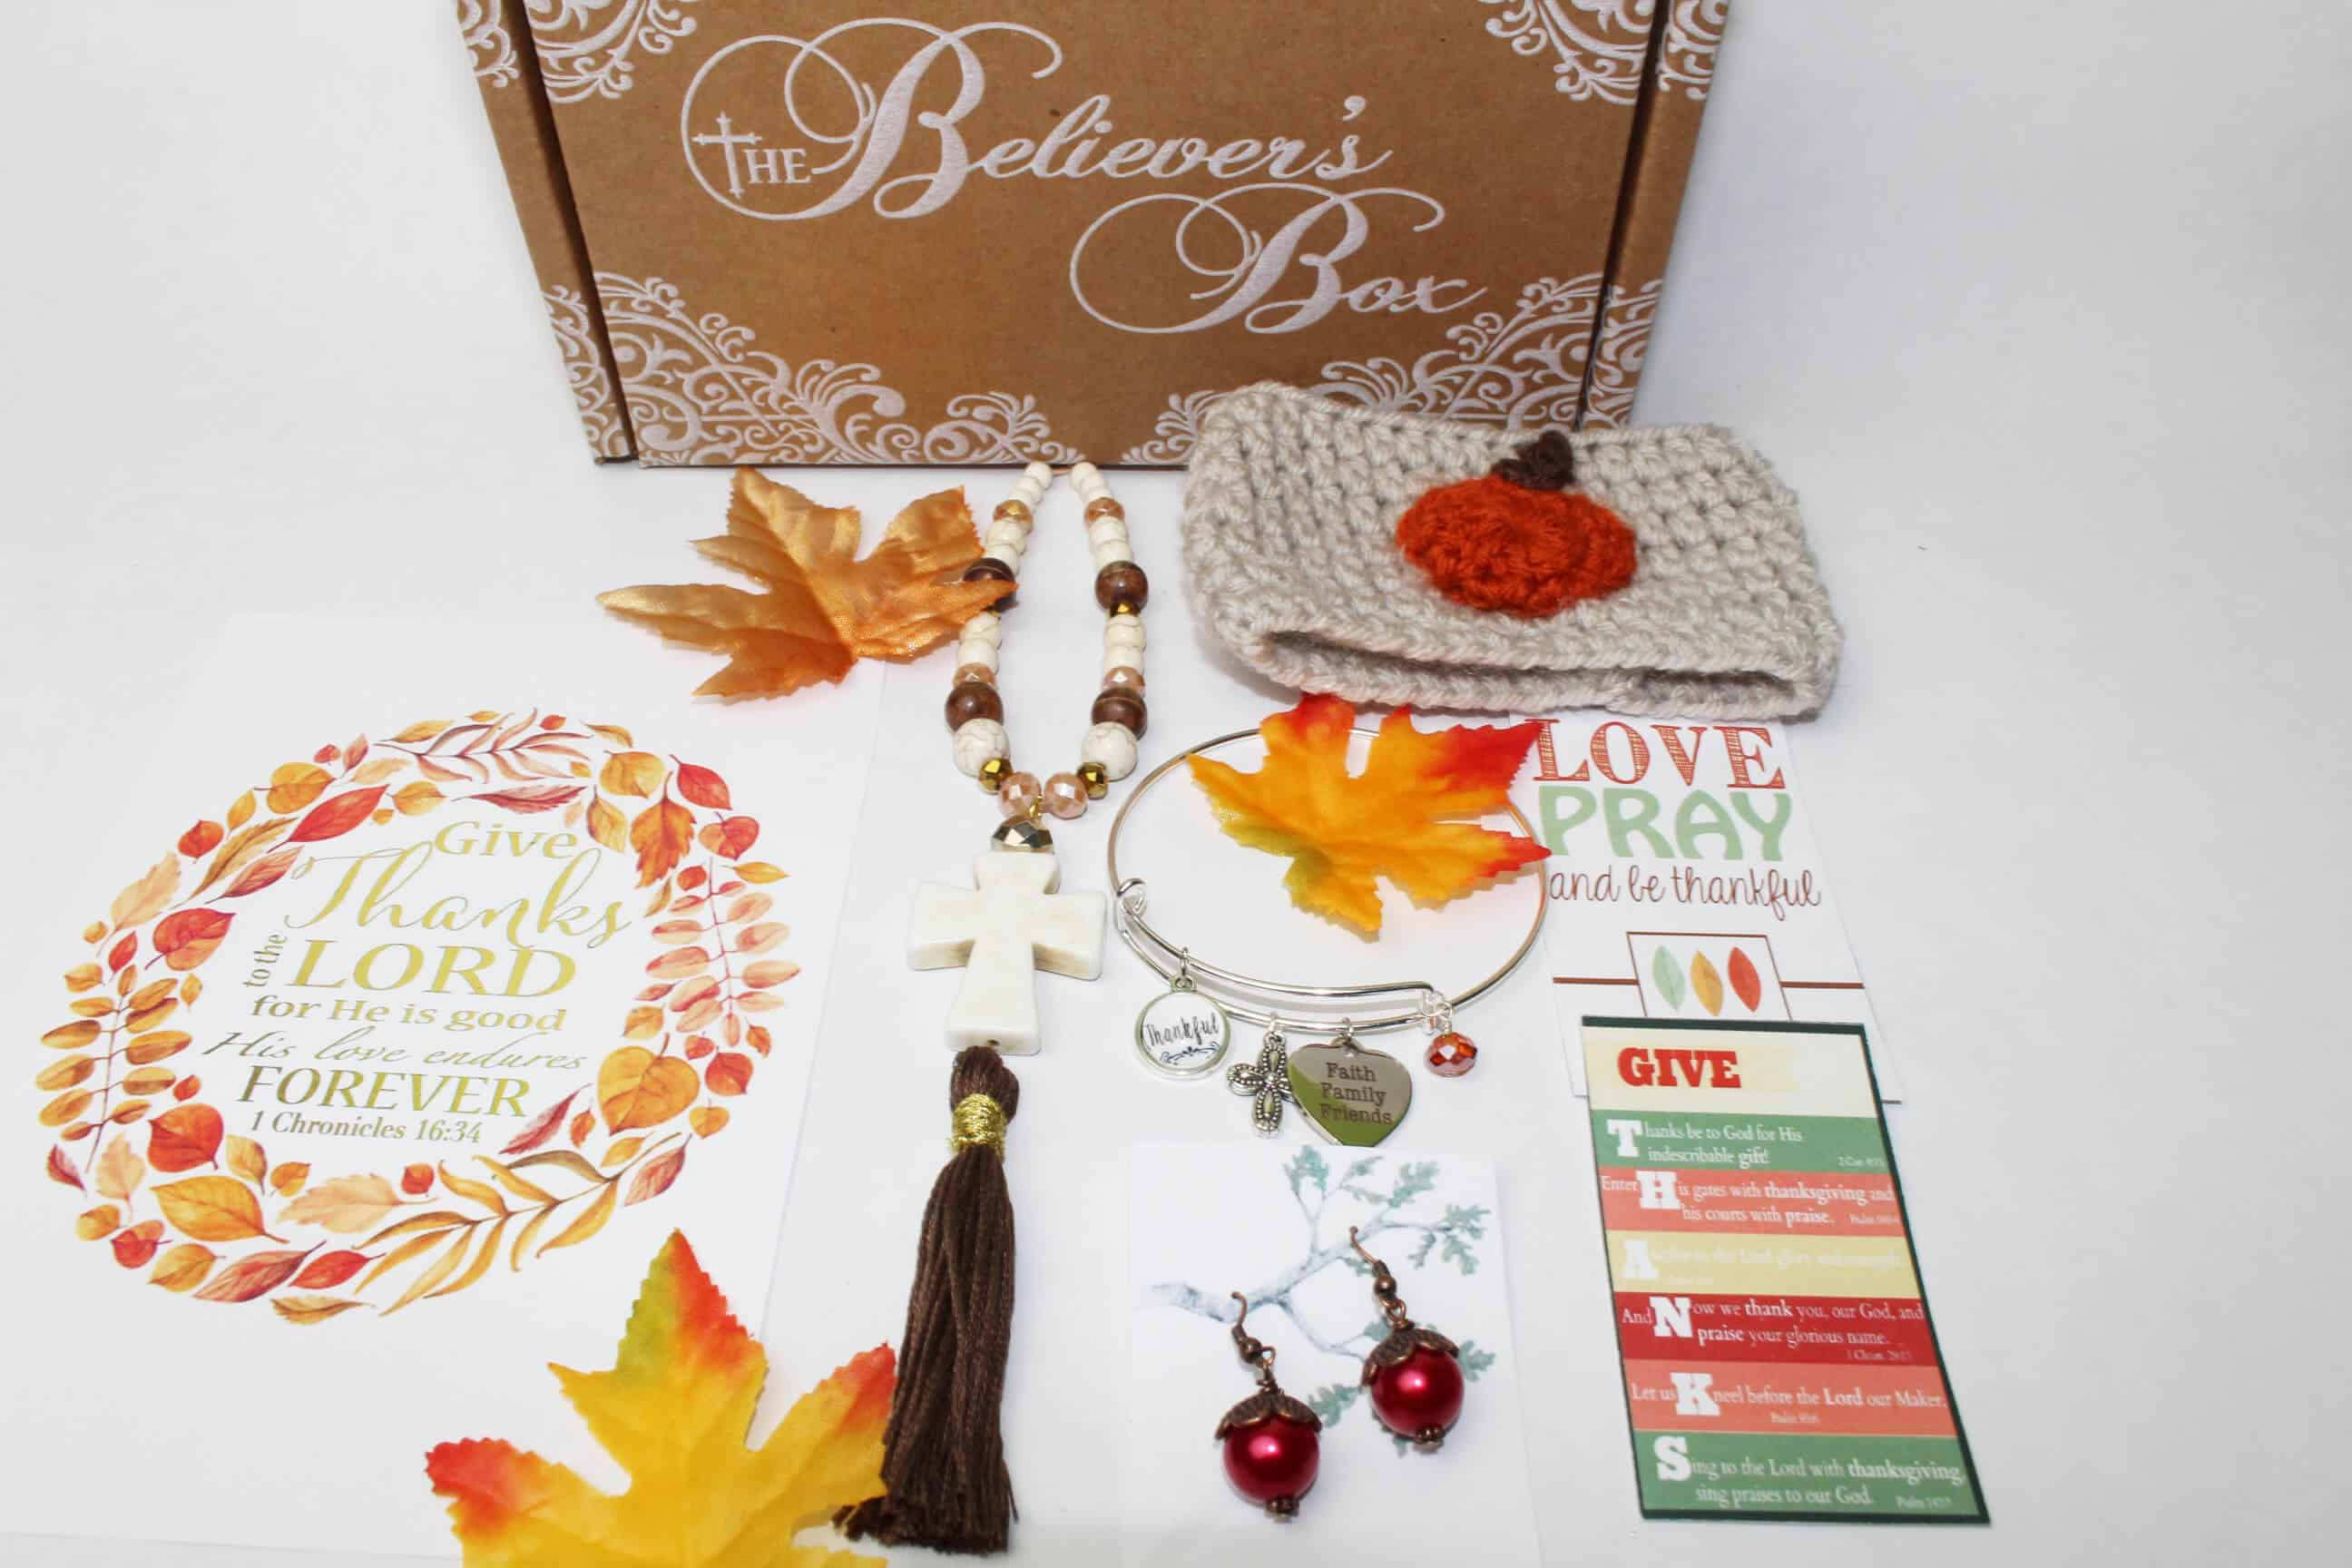 The Believer's Box Cyber Monday Deal: Get $10 off 6+ Month Prepaid subscriptions!